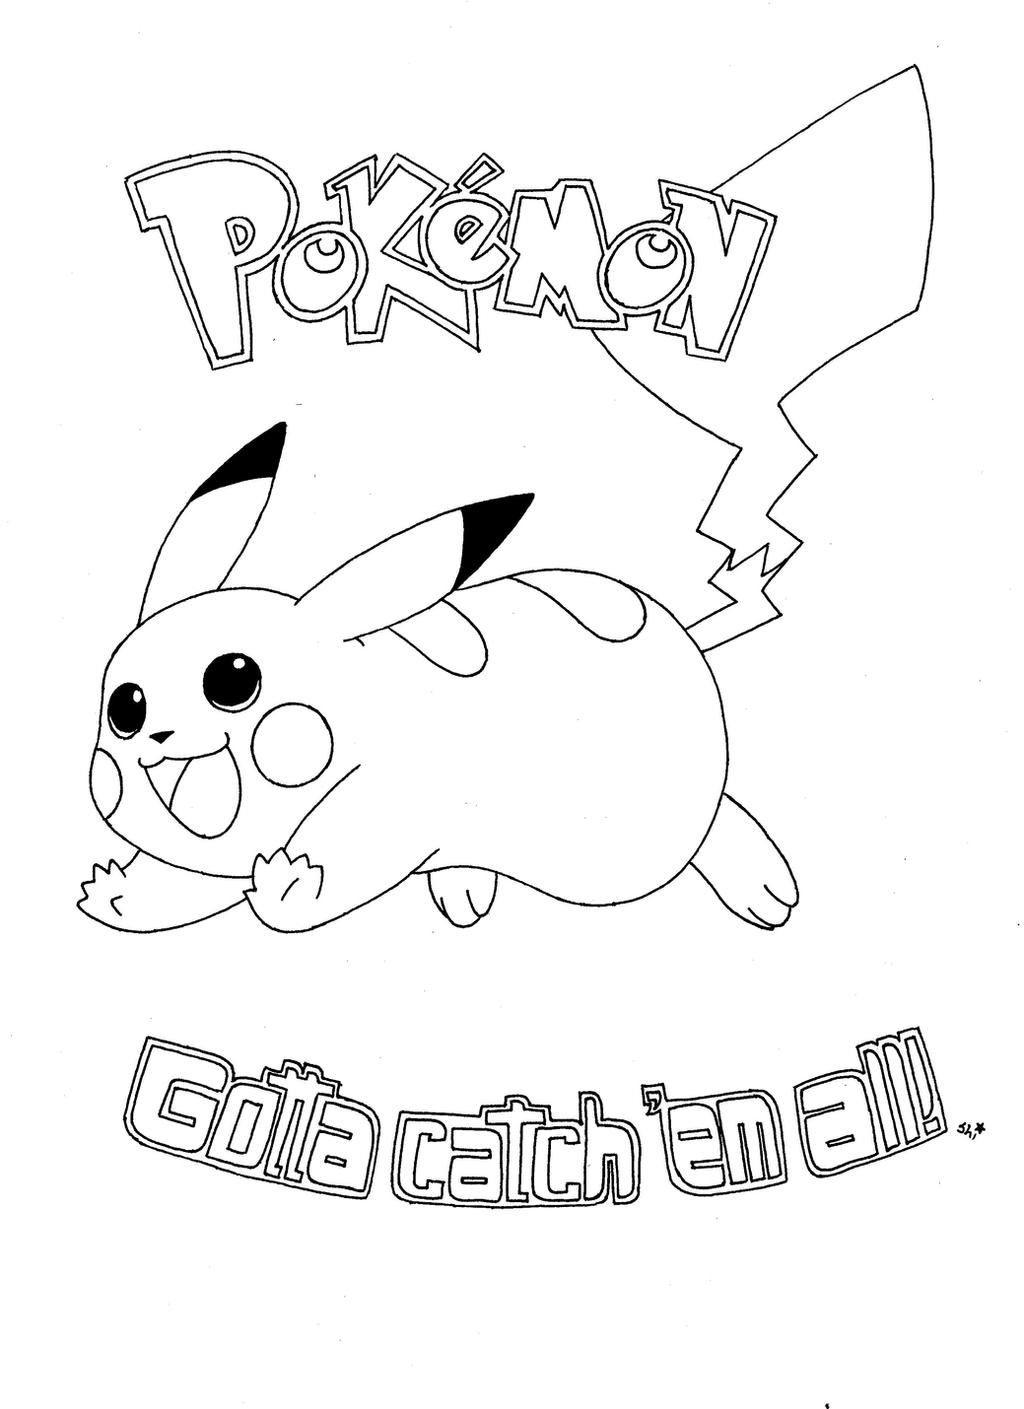 pikachu coloring page by champion frita on deviantart